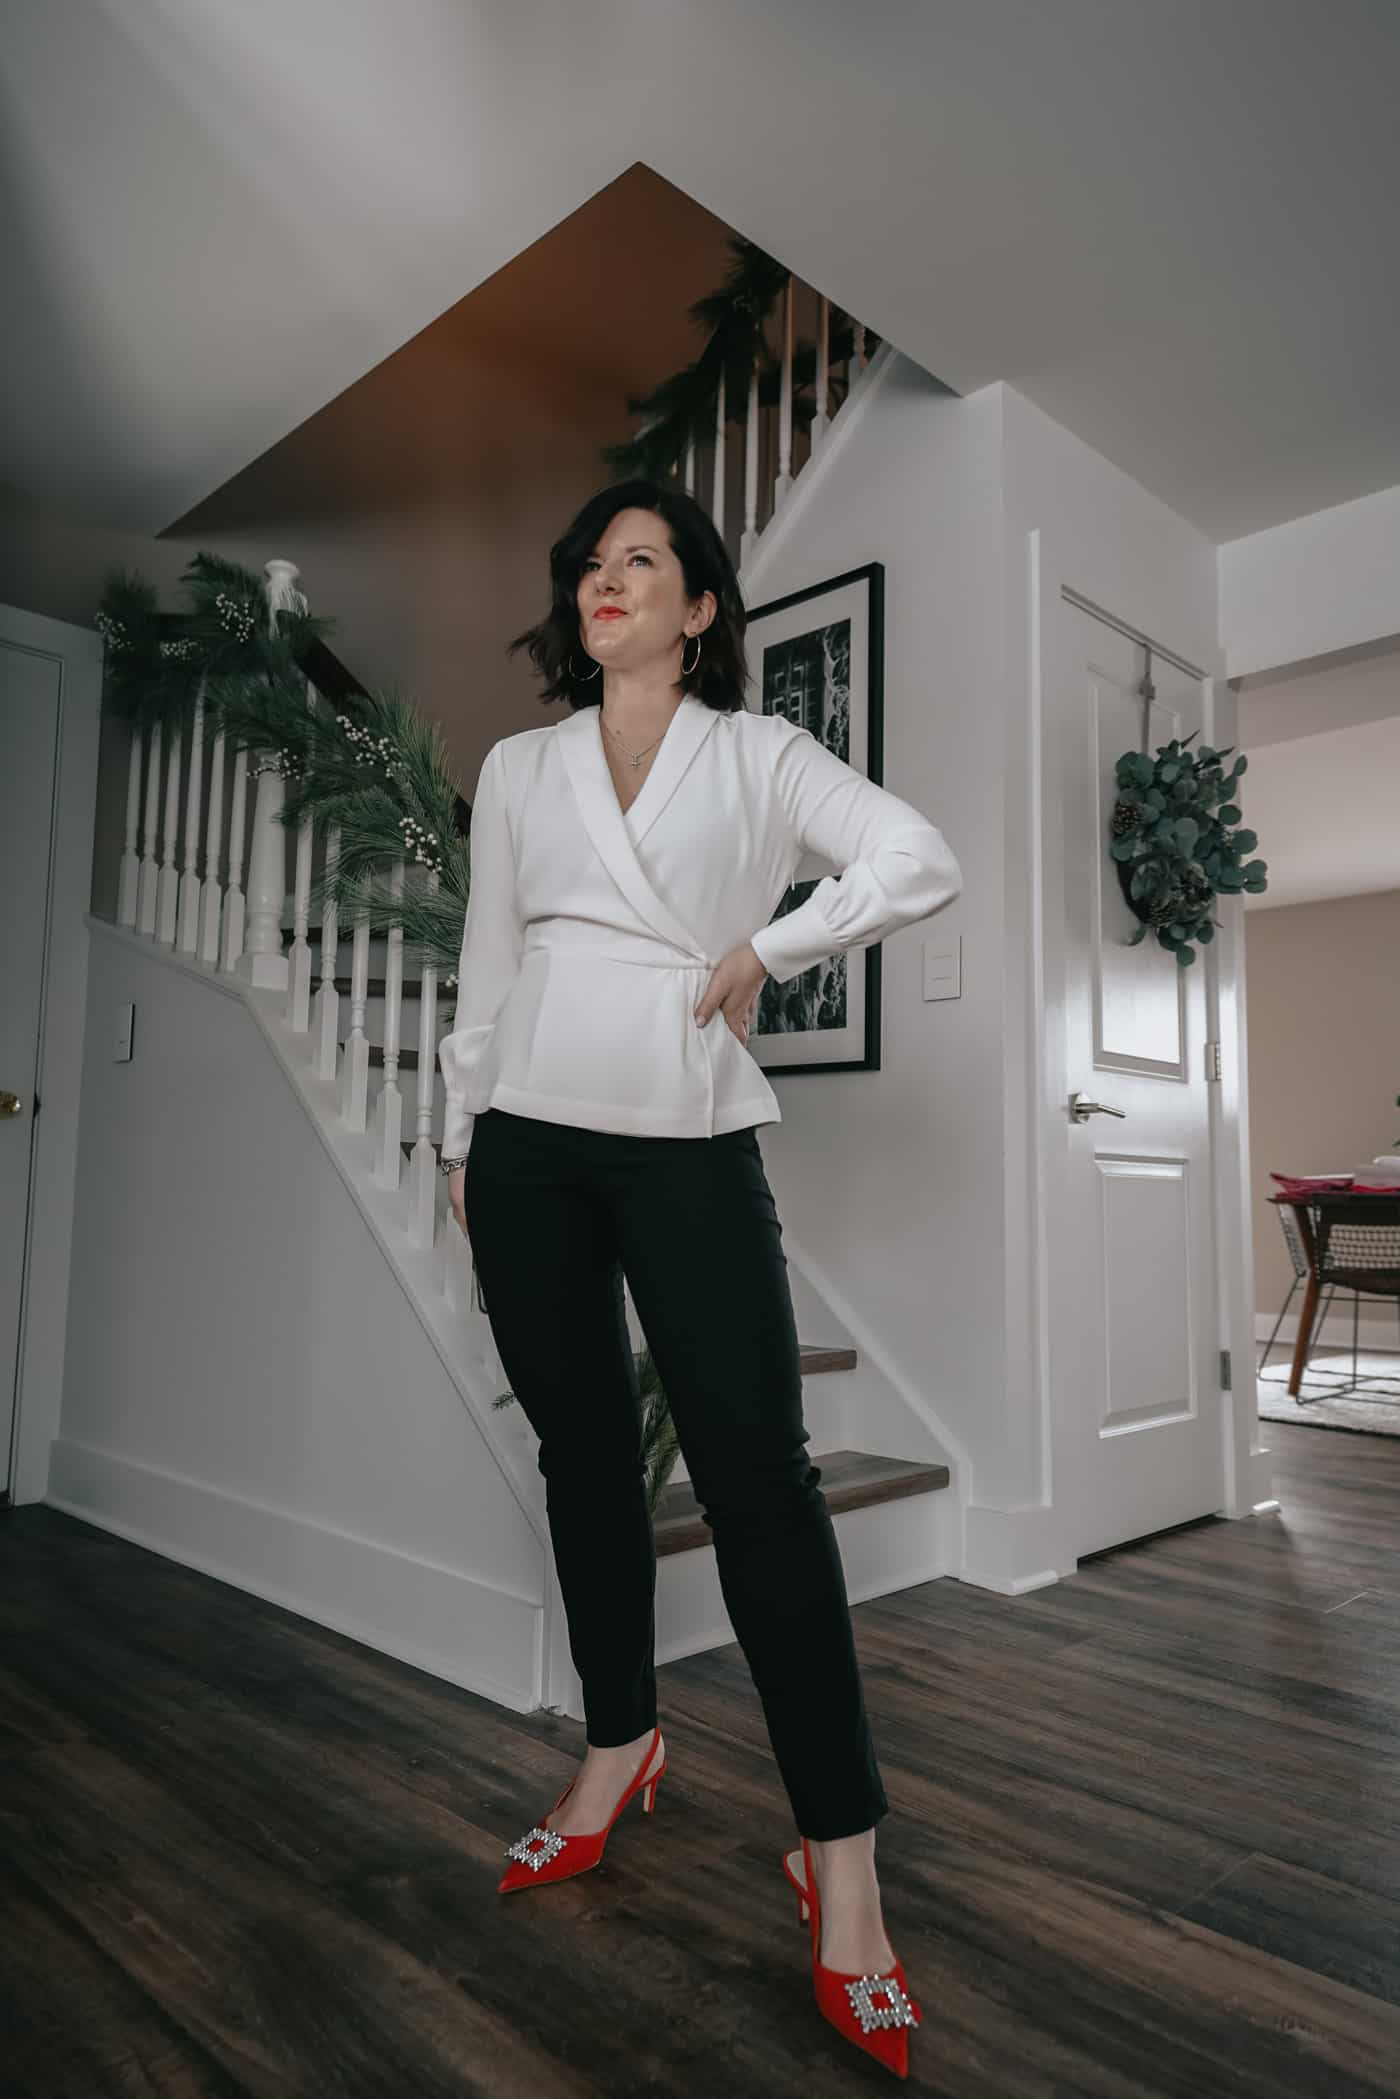 A Lily Love Affair showing you 5 ways to wear womens black pants. Wearing black blazer, prada handbag, white blouse, red heels, work outfit, petite black pants, fall outfit ideas, what to wear to work, black pants to work, what to wear to work